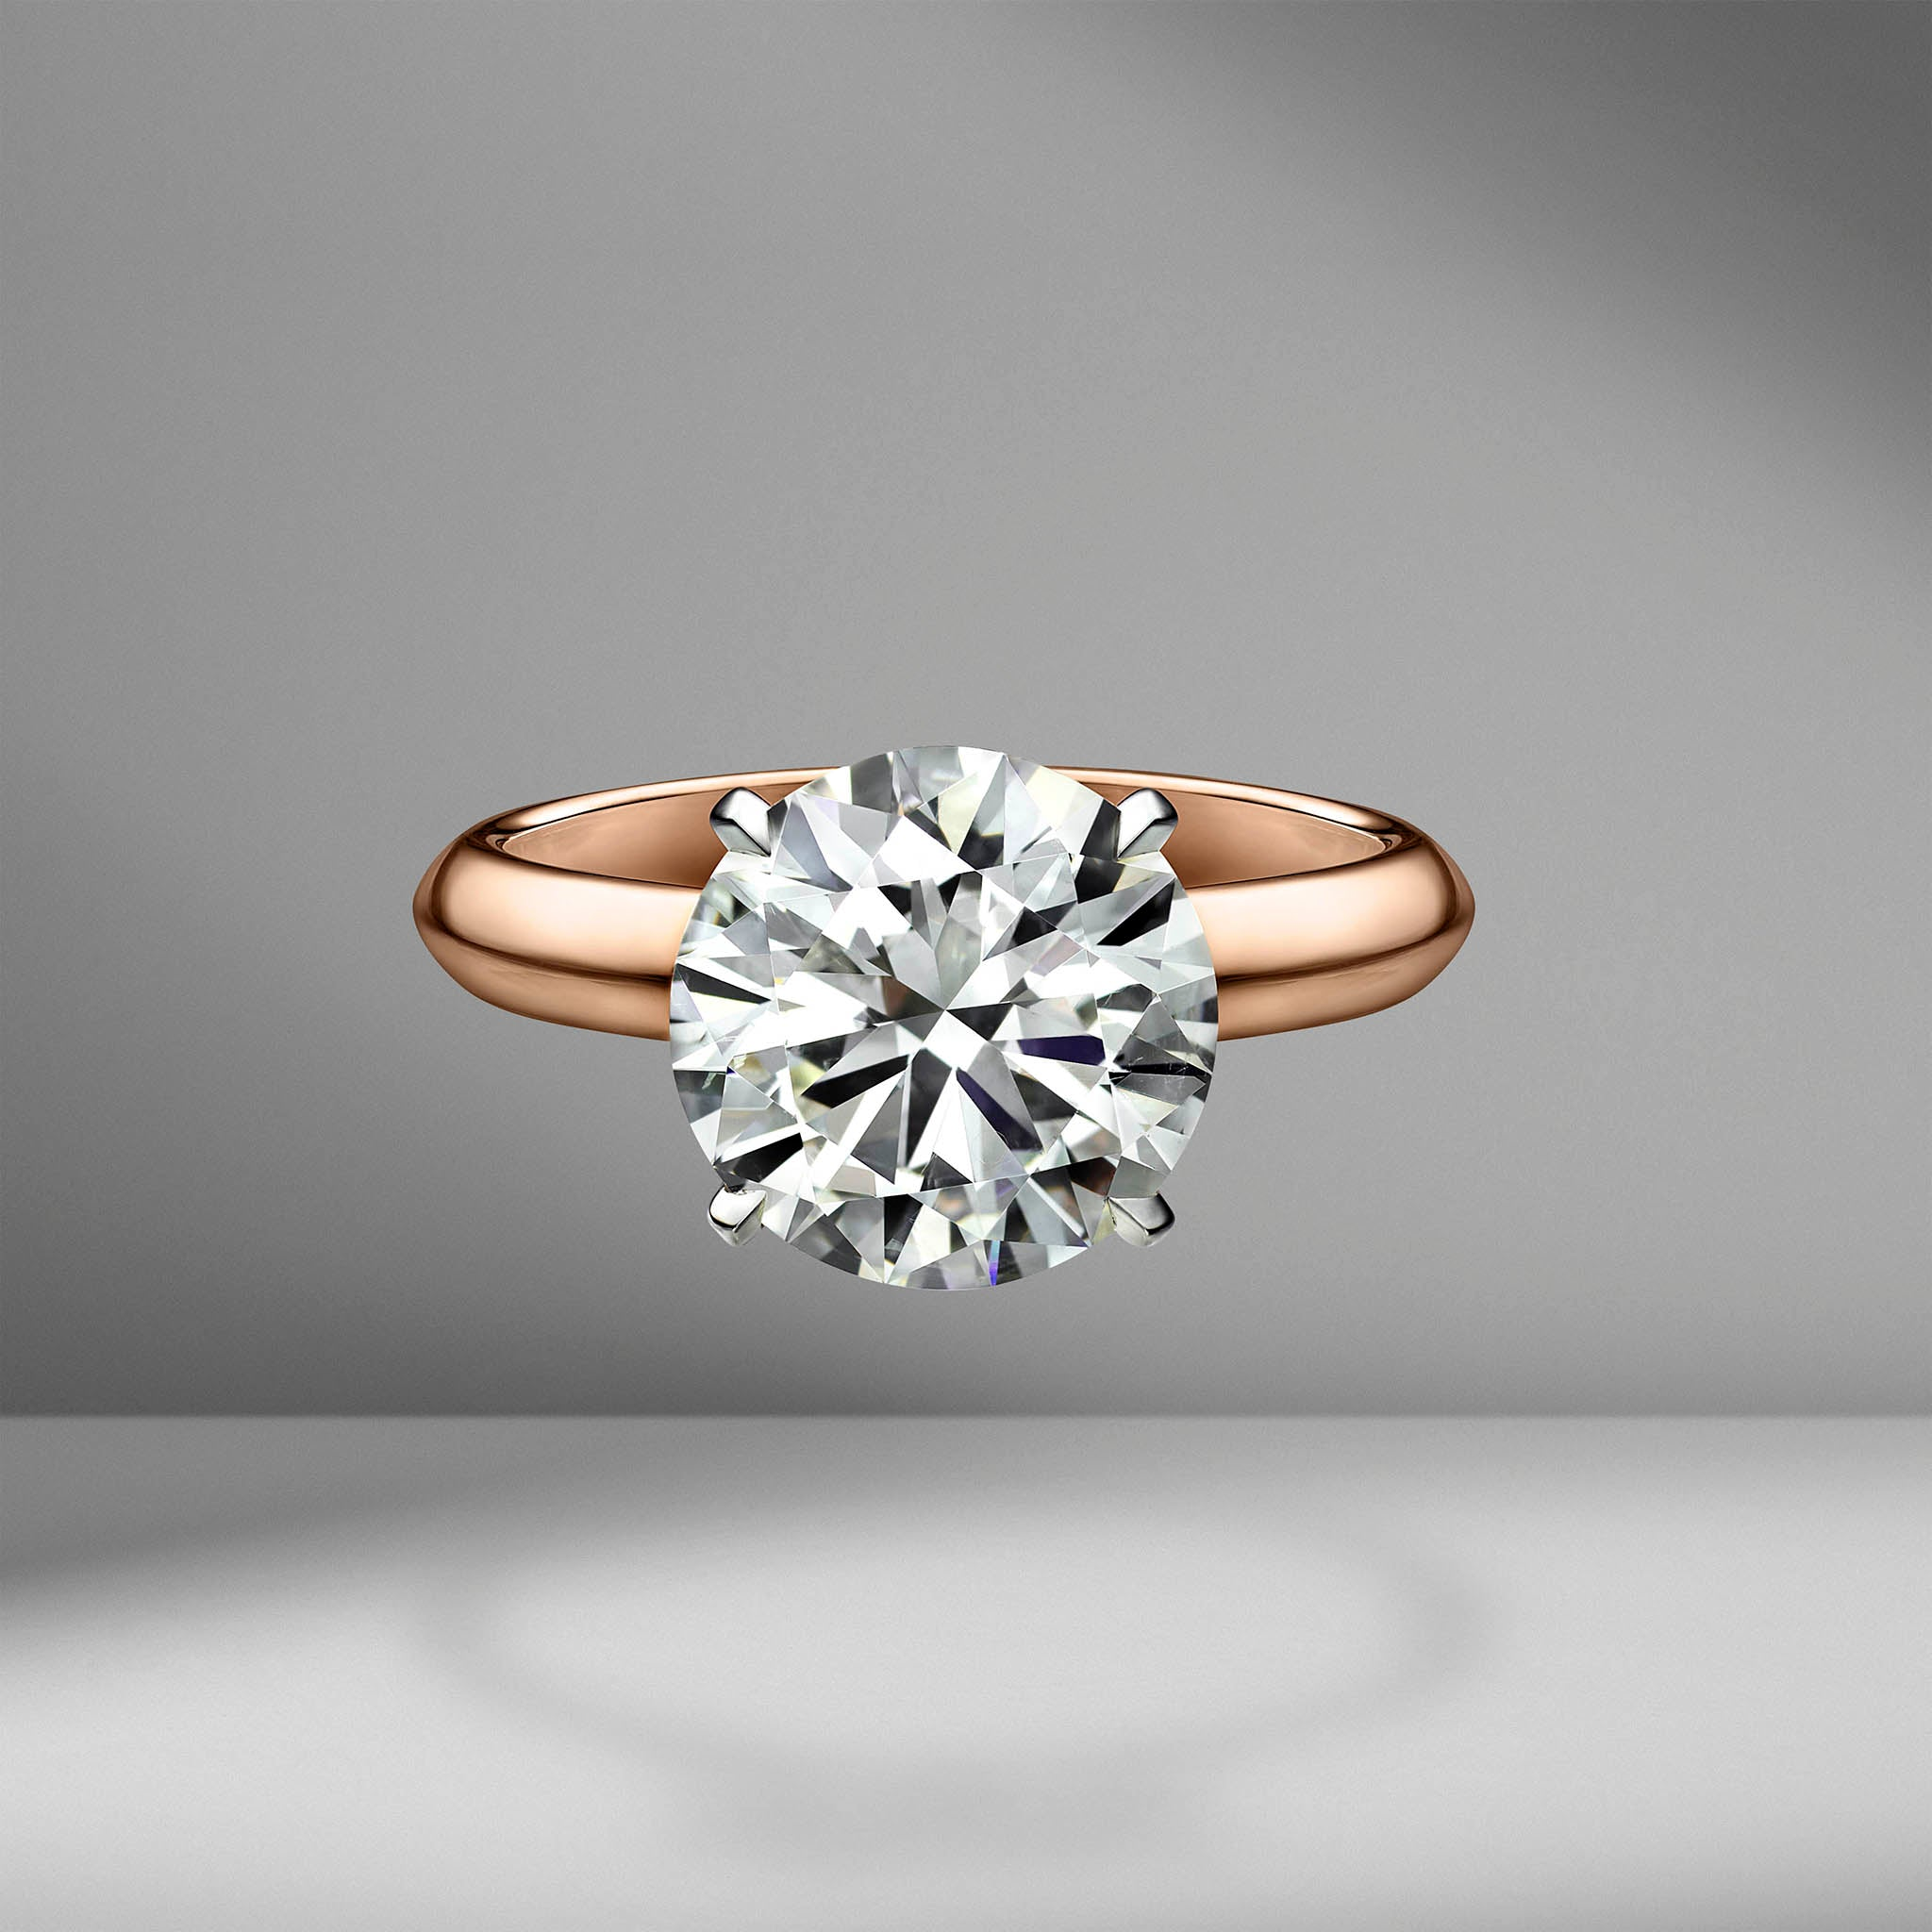 Round Brilliant Cut Solitaire Engagement Ring with Knife Edge Setting